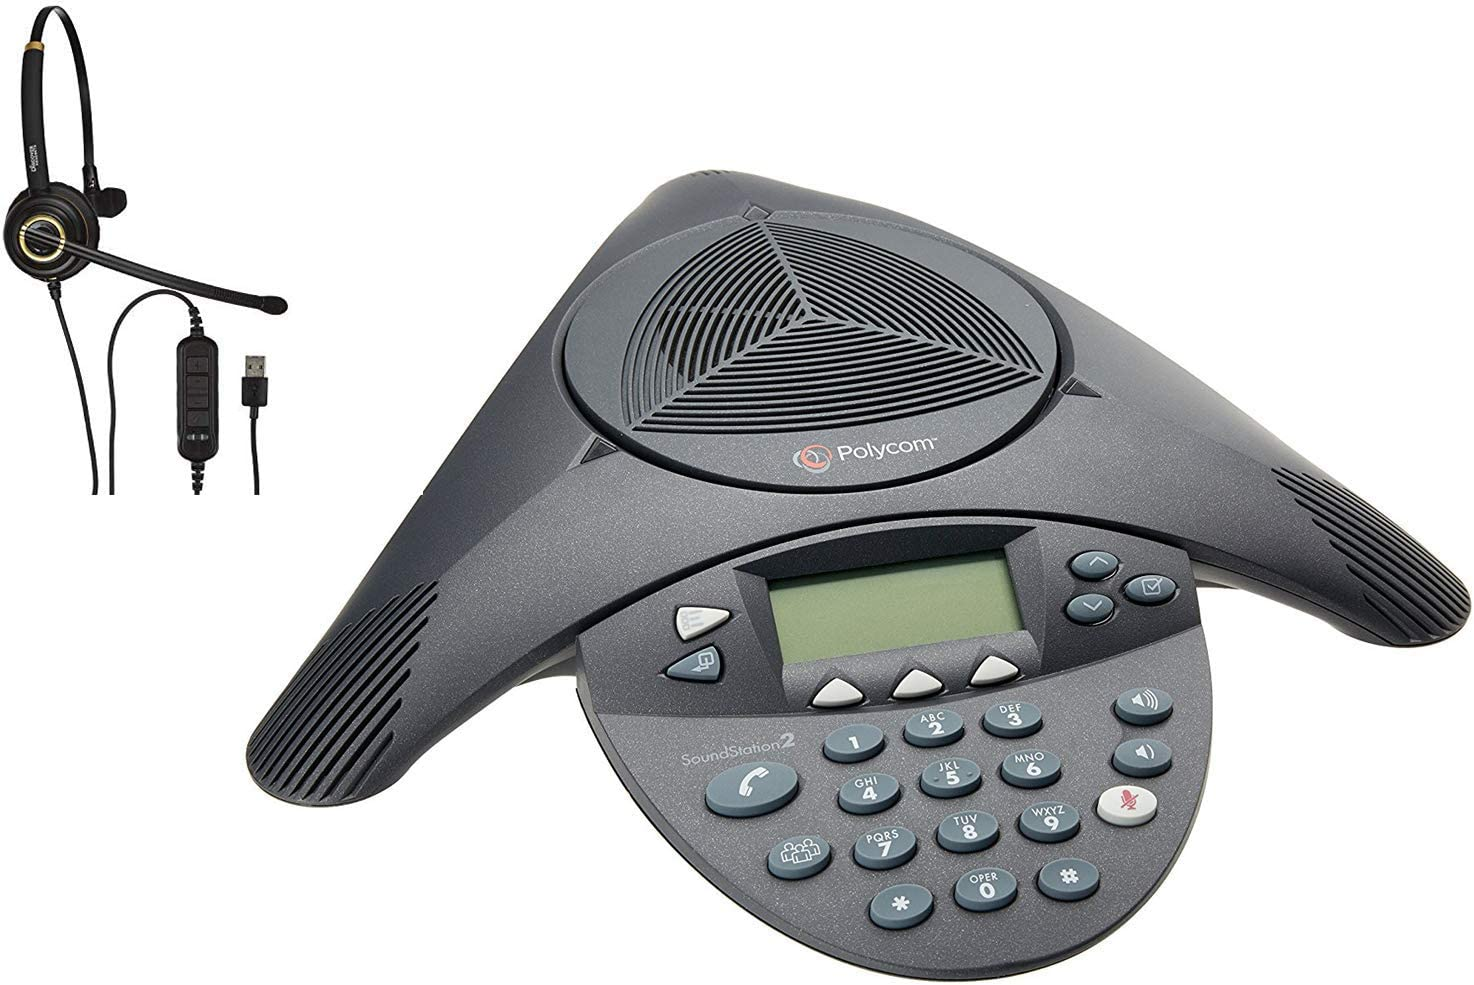 Certified Refurbished Polycom SoundStation 2 Expandable Conference Phone Bundle with Extension Microphones and Headset Discover D711U Headset